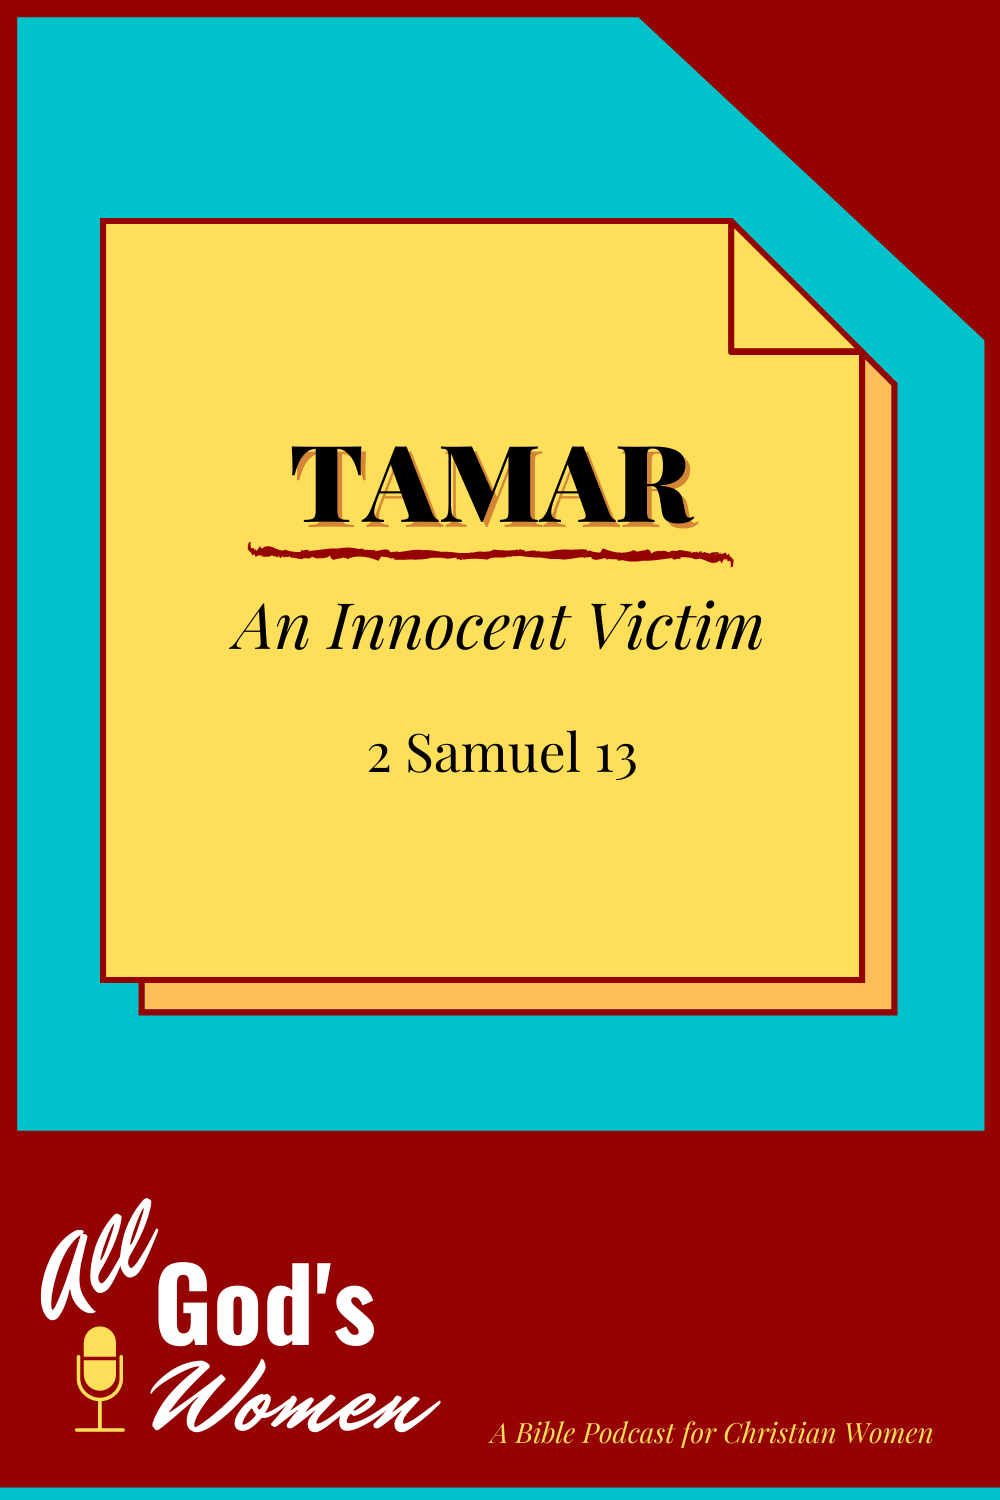 Tamar - An Innocent Victim